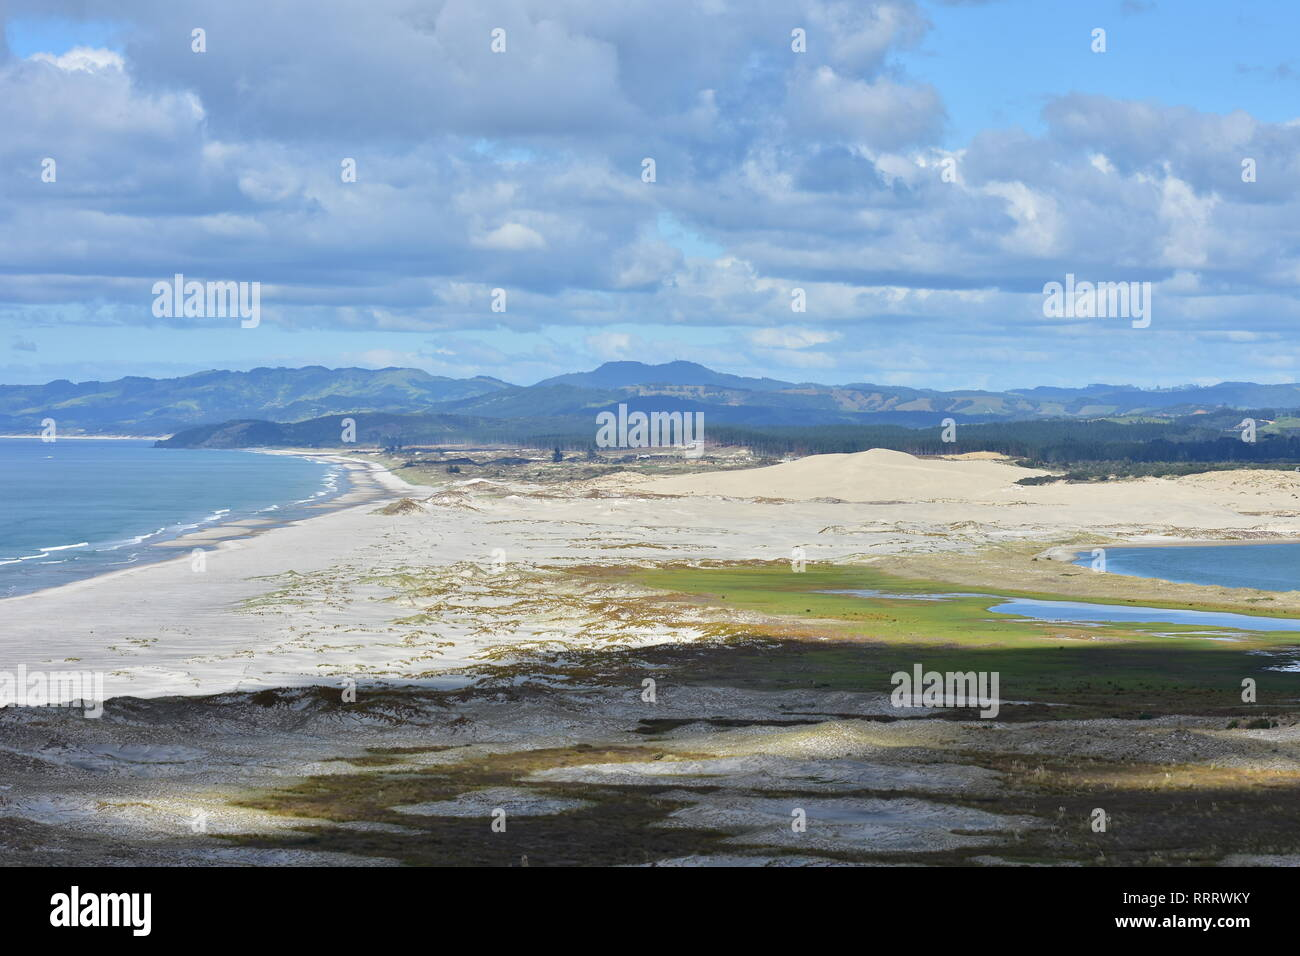 Sand dunes of various colors covered with native weeds forming barrier between calm harbor and open ocean. - Stock Image